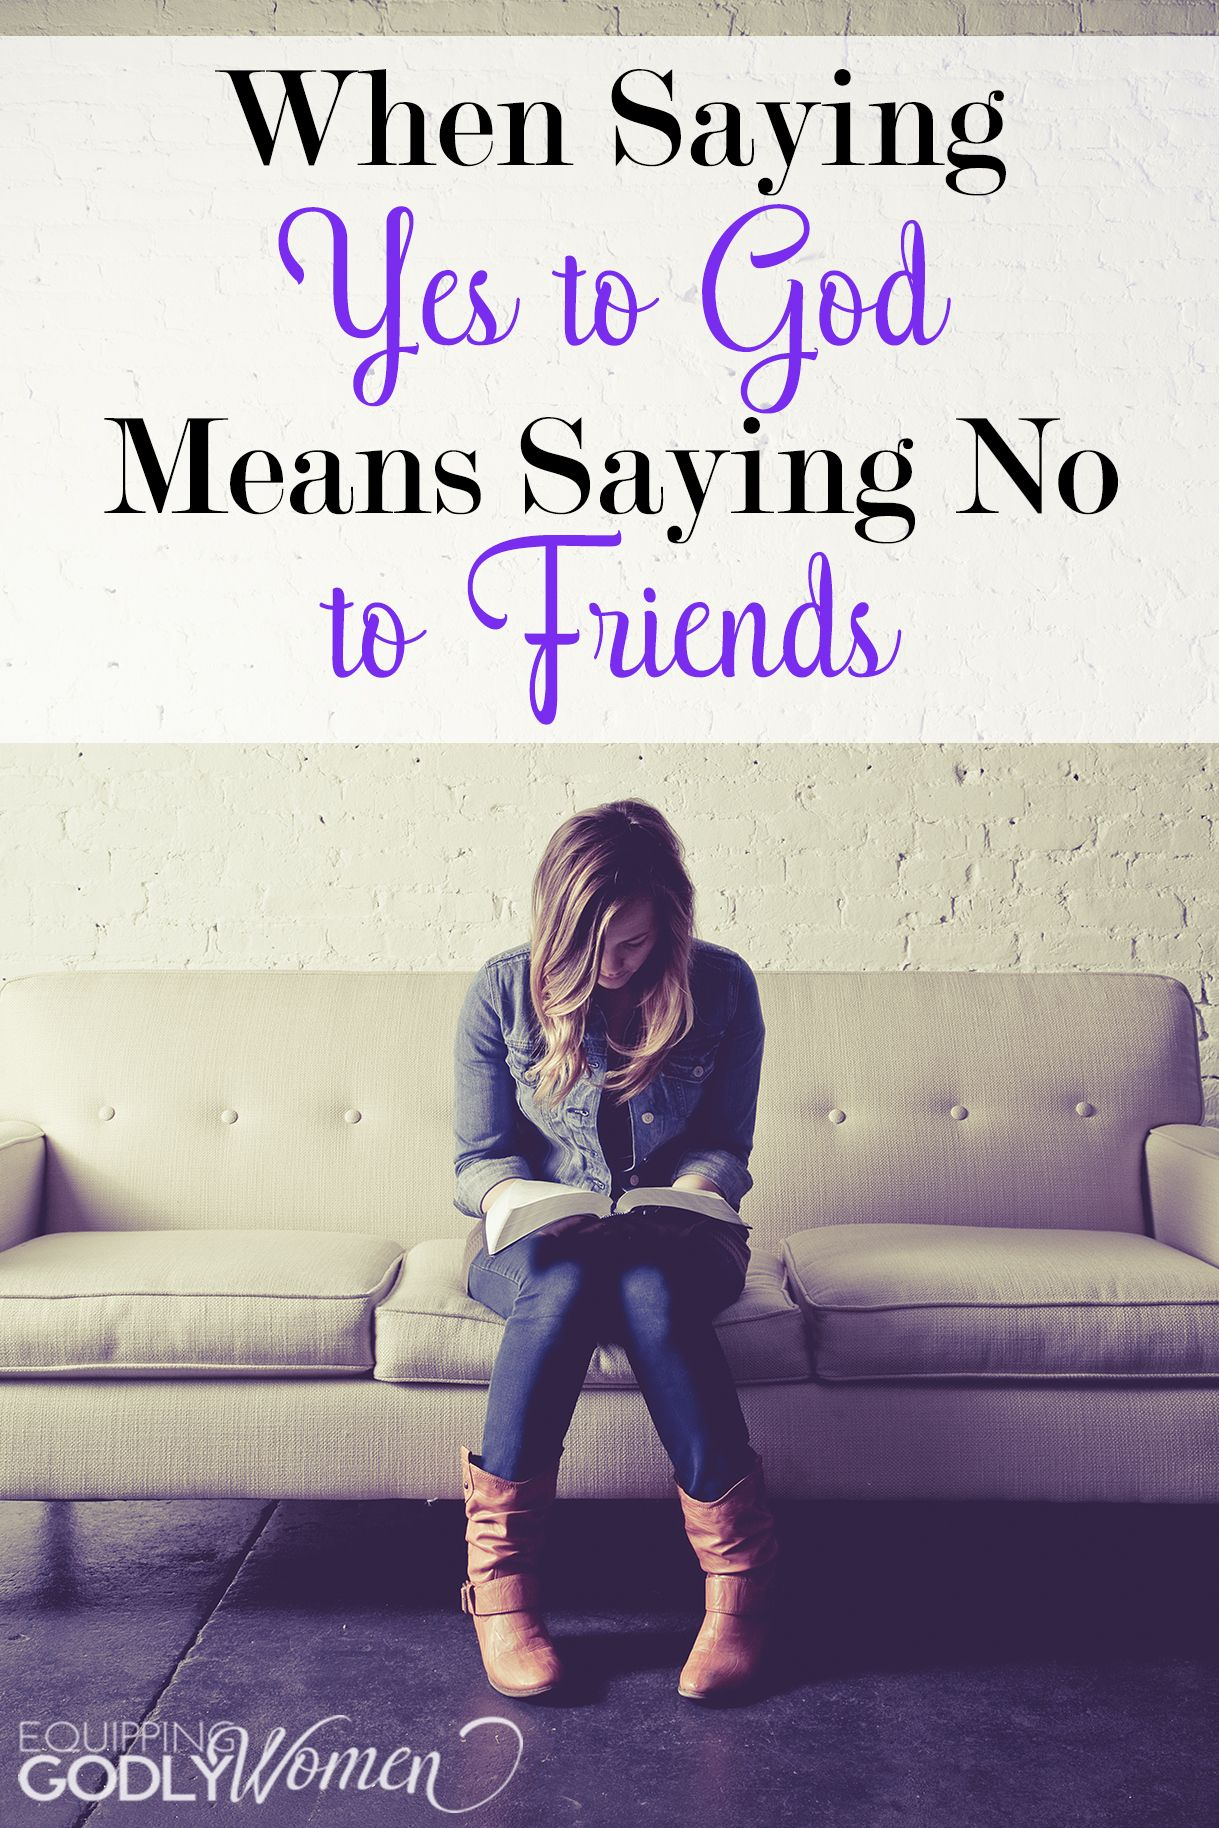 When Saying Yes to God Means Saying No to Friends